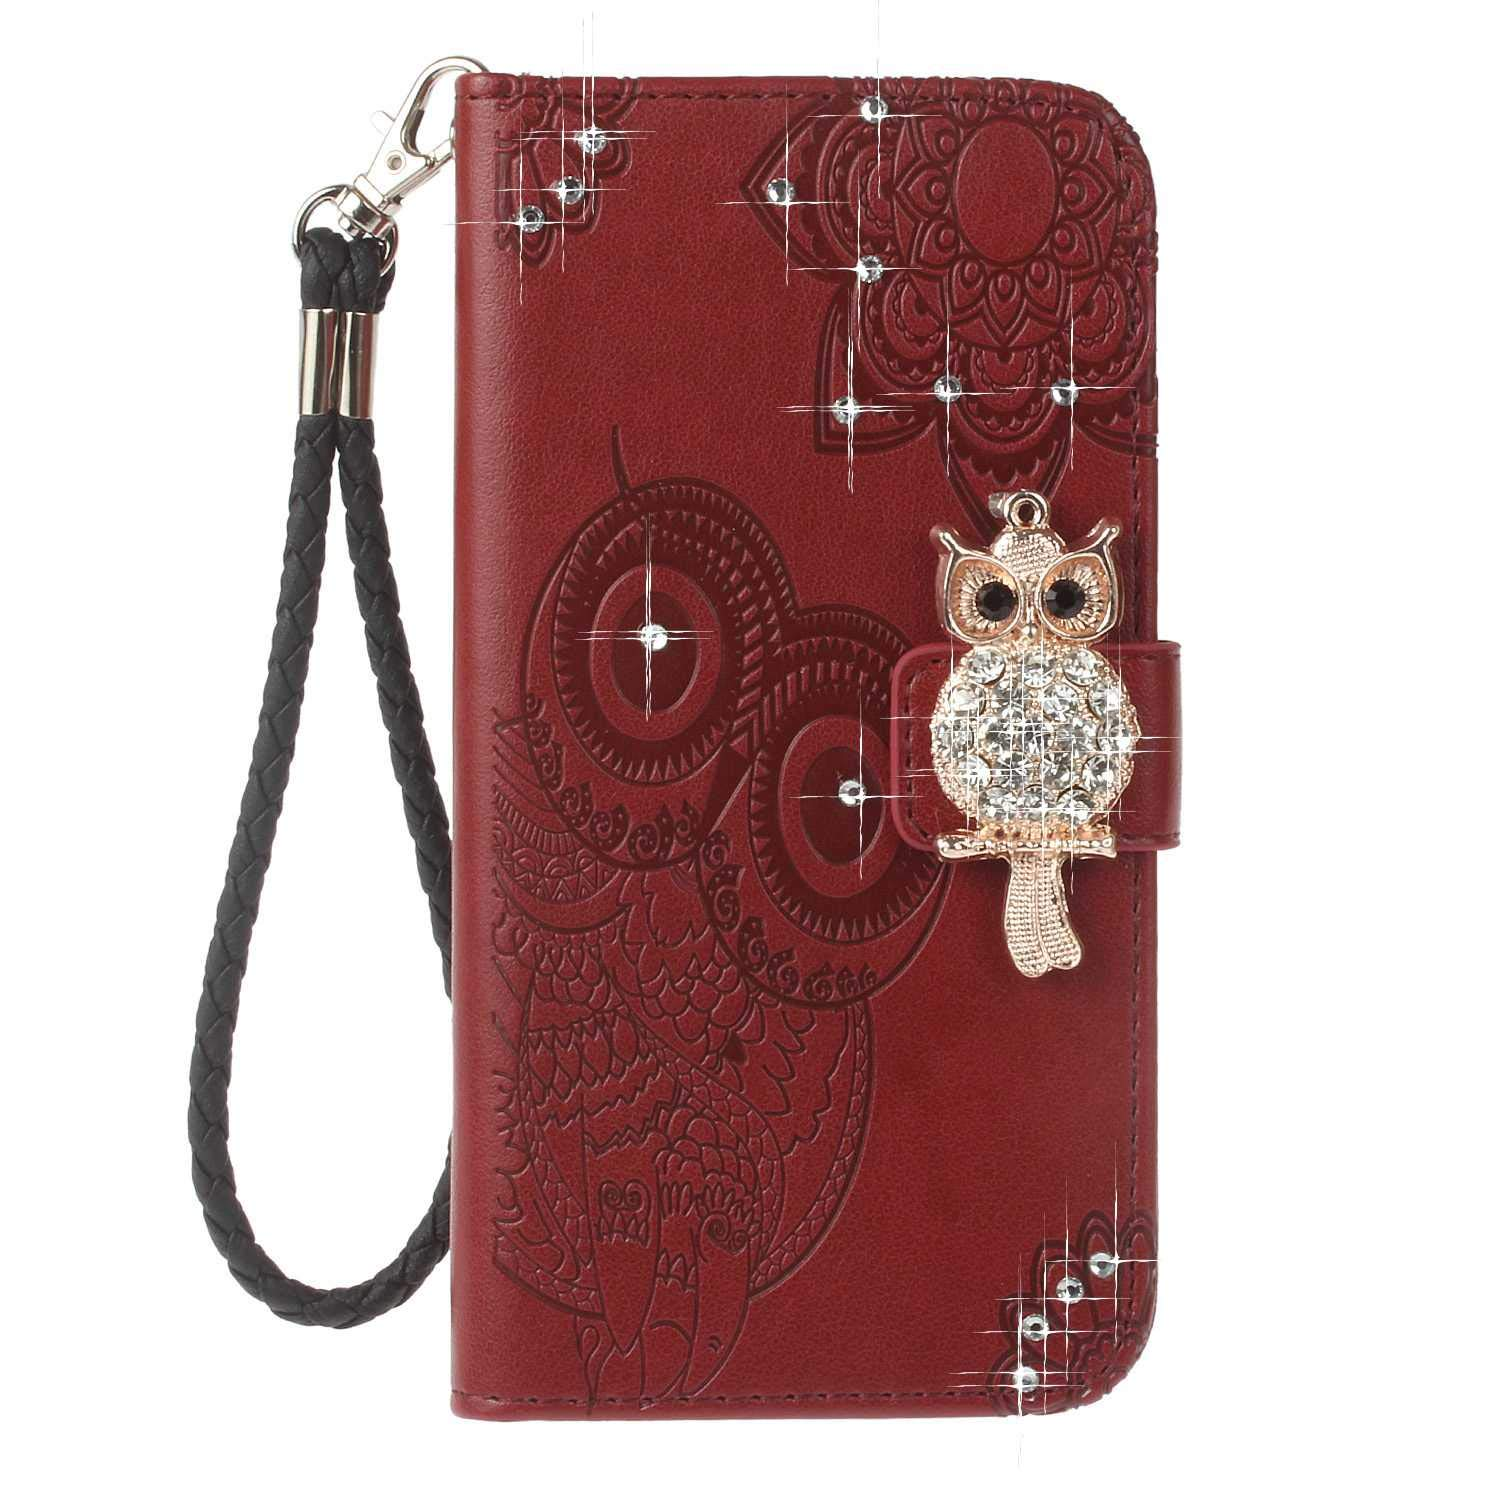 Bear Village LG G7 Case, Leather Case with Wrist Strap and Credit Card Slot, Owl Magnetic Closure Shockproof Cover for LG G7, Red Brown by Bear Village